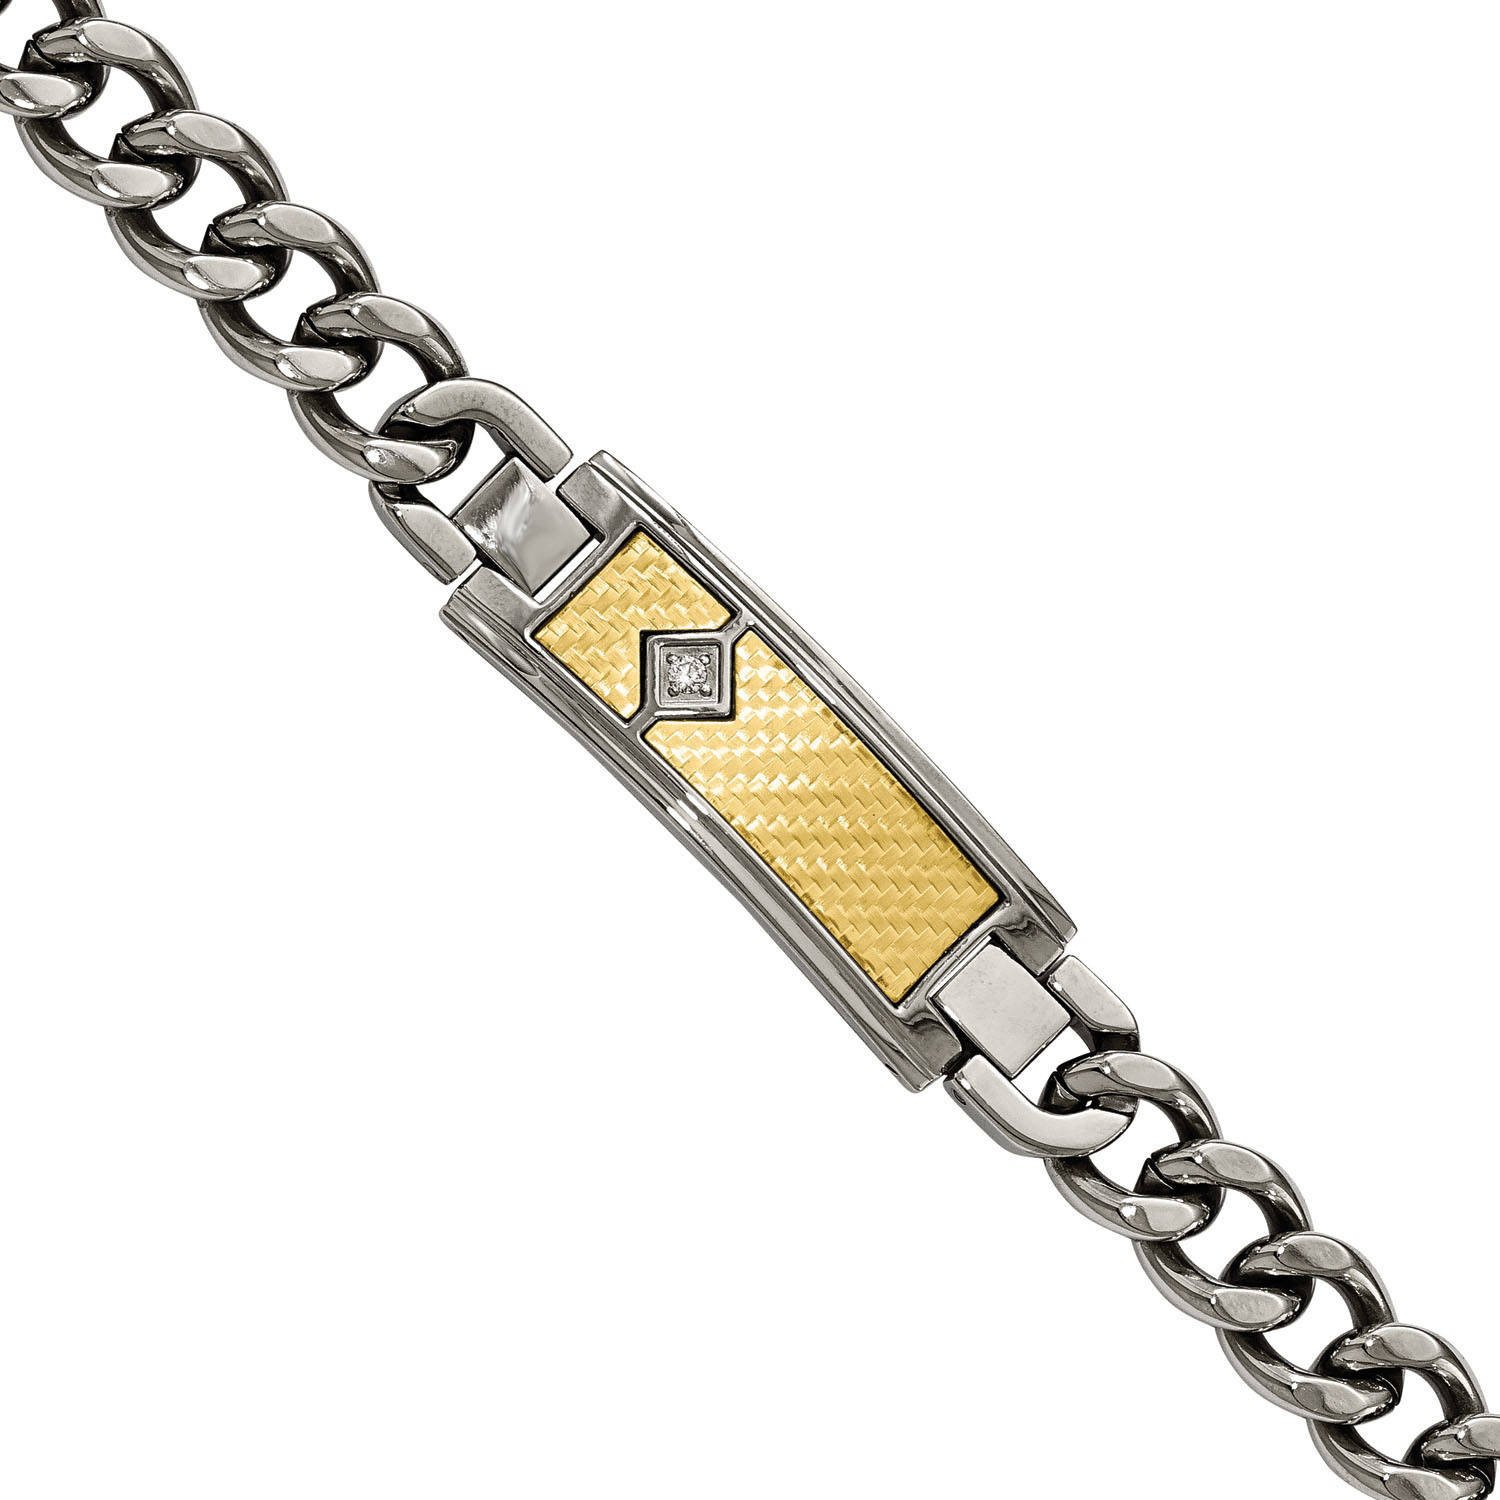 Primal Steel Stainless Steel with 18kt Polished Weave Textured Diamond ID Bracelet by Generic